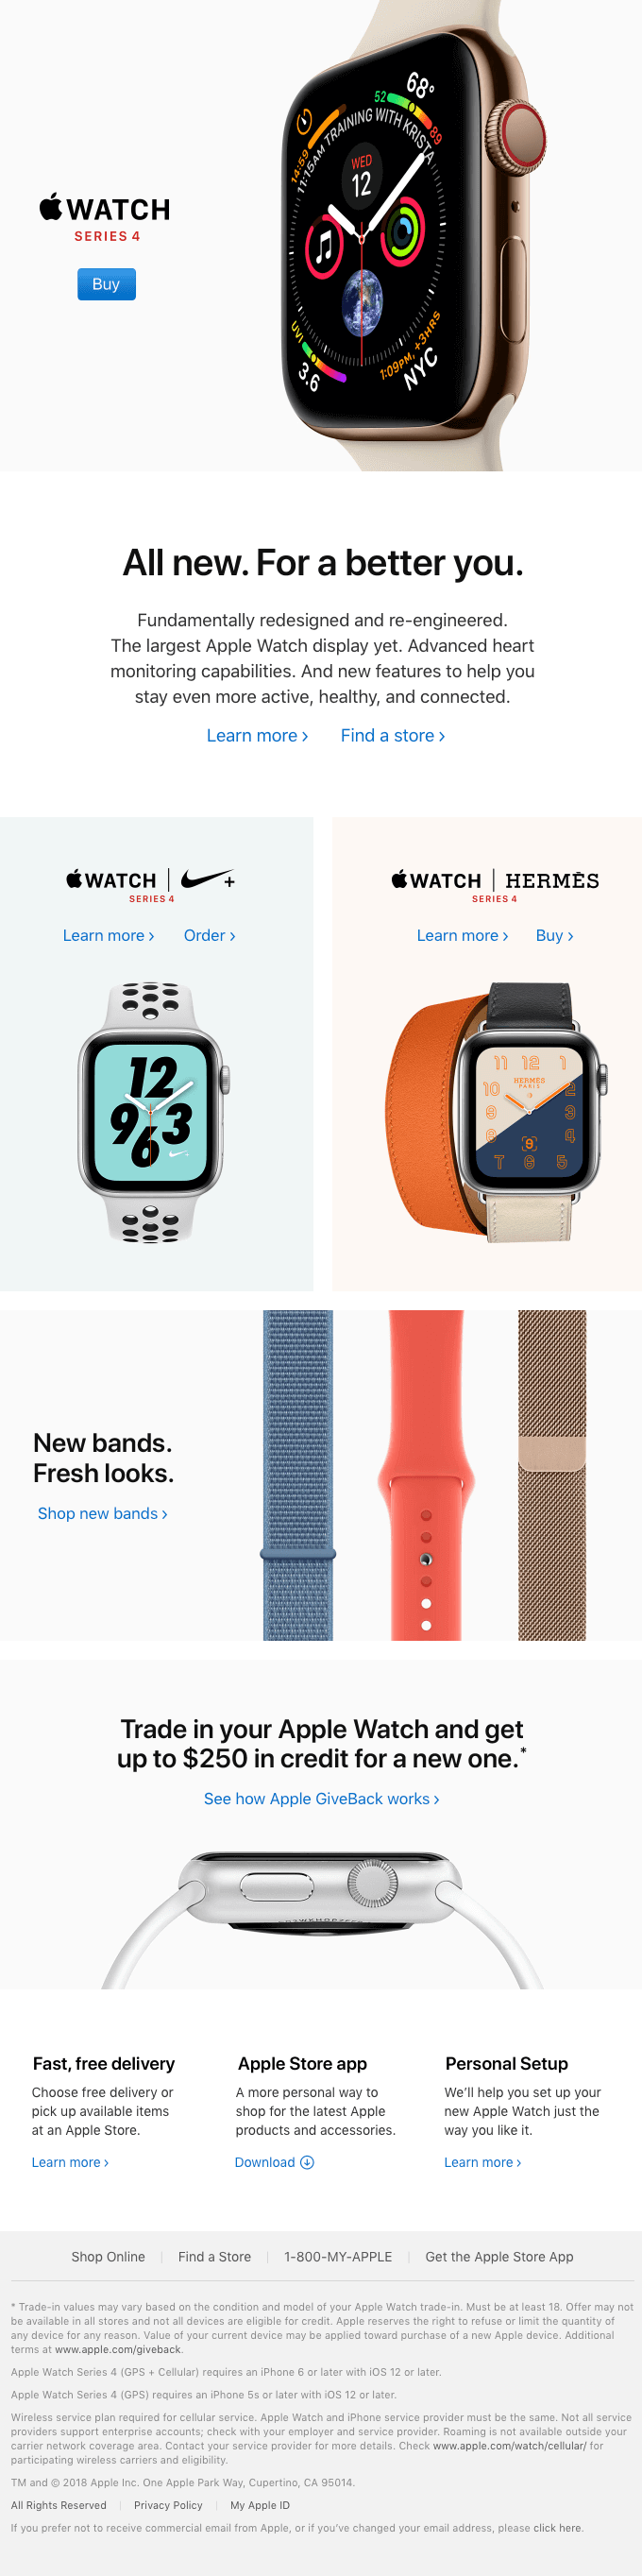 All new. For a better you. Apple launch email sample